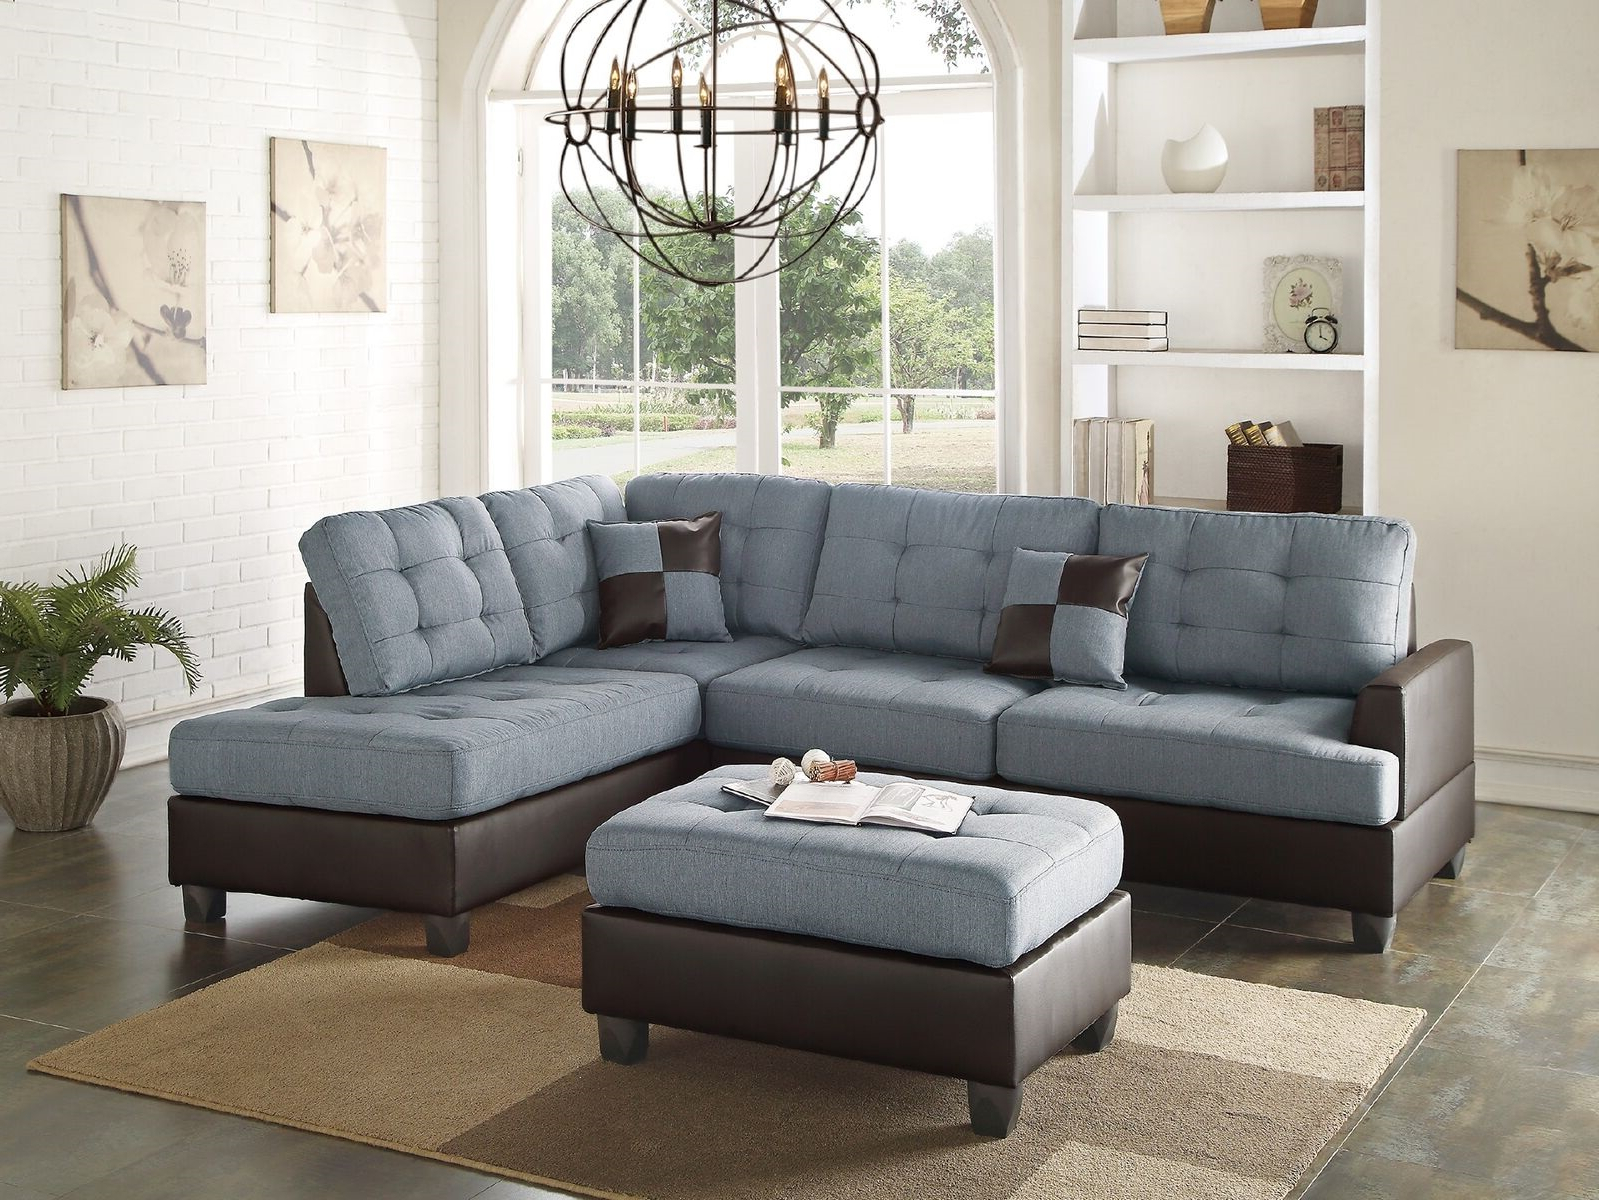 Well Liked Sectional Sofas In Gray Pertaining To Mathew Sectional Sofa Set Contemporary Grey Linen Like (View 1 of 20)